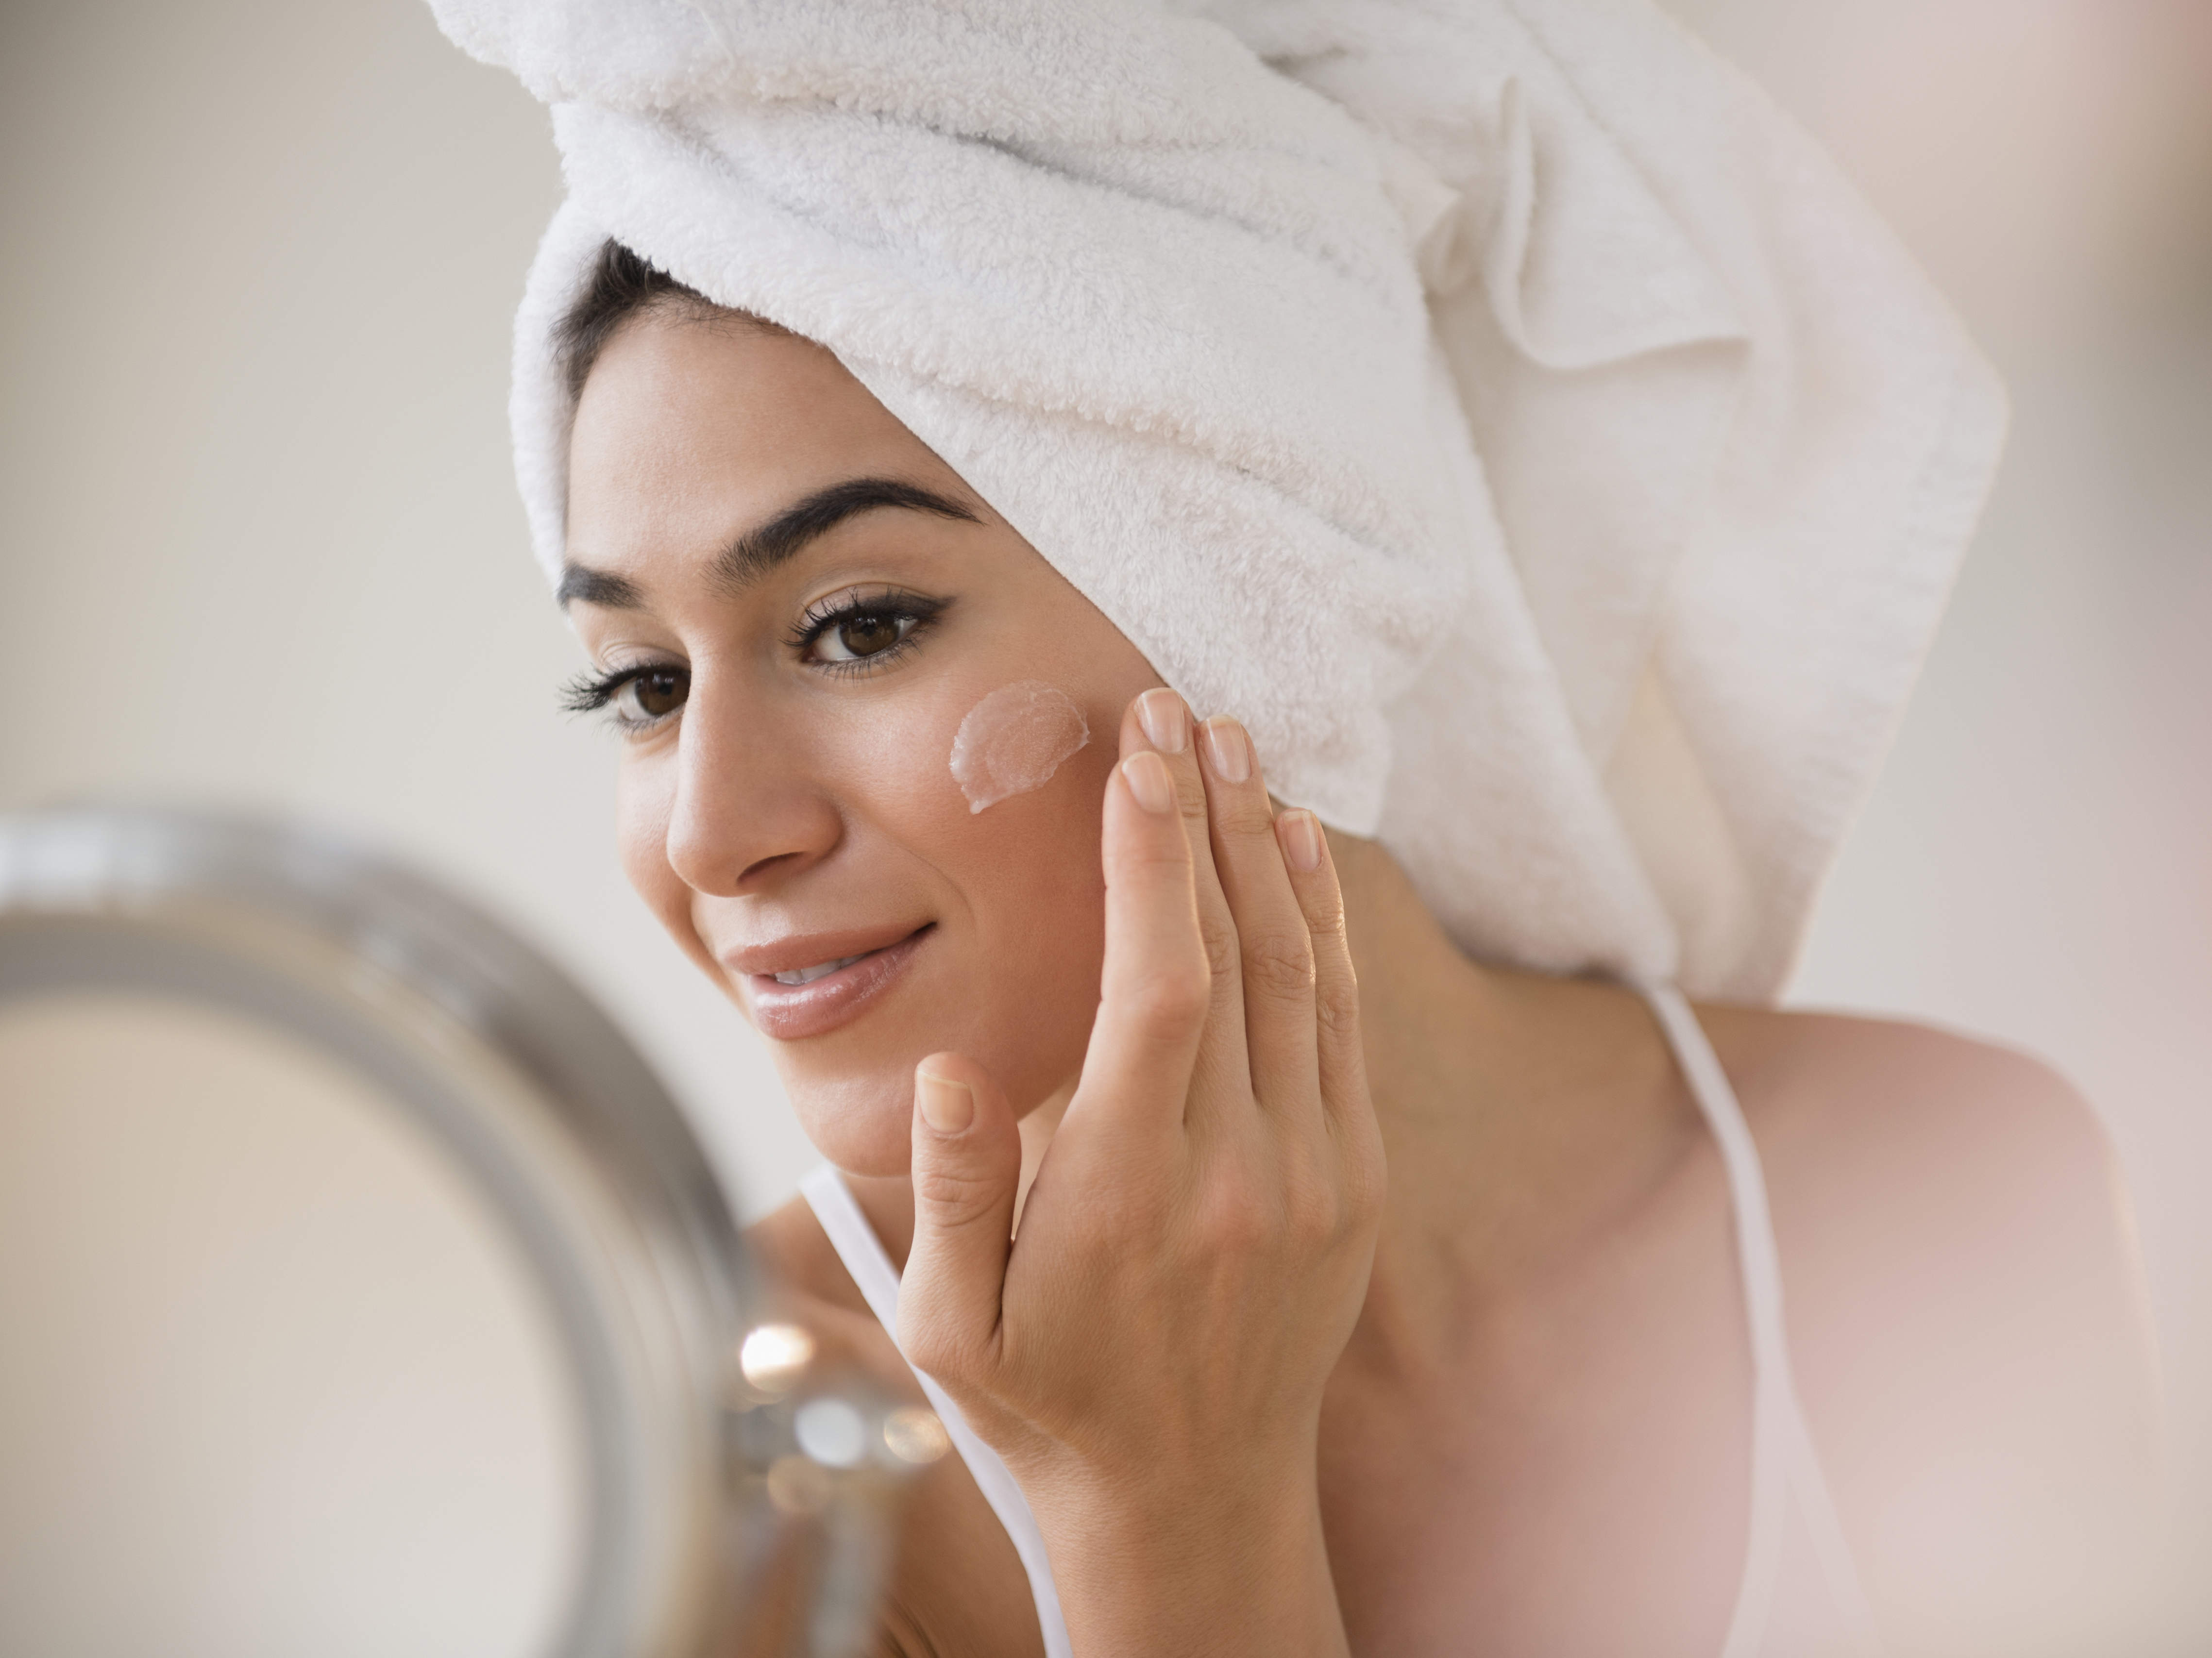 The Best Face Products For People With Psoriasis According To